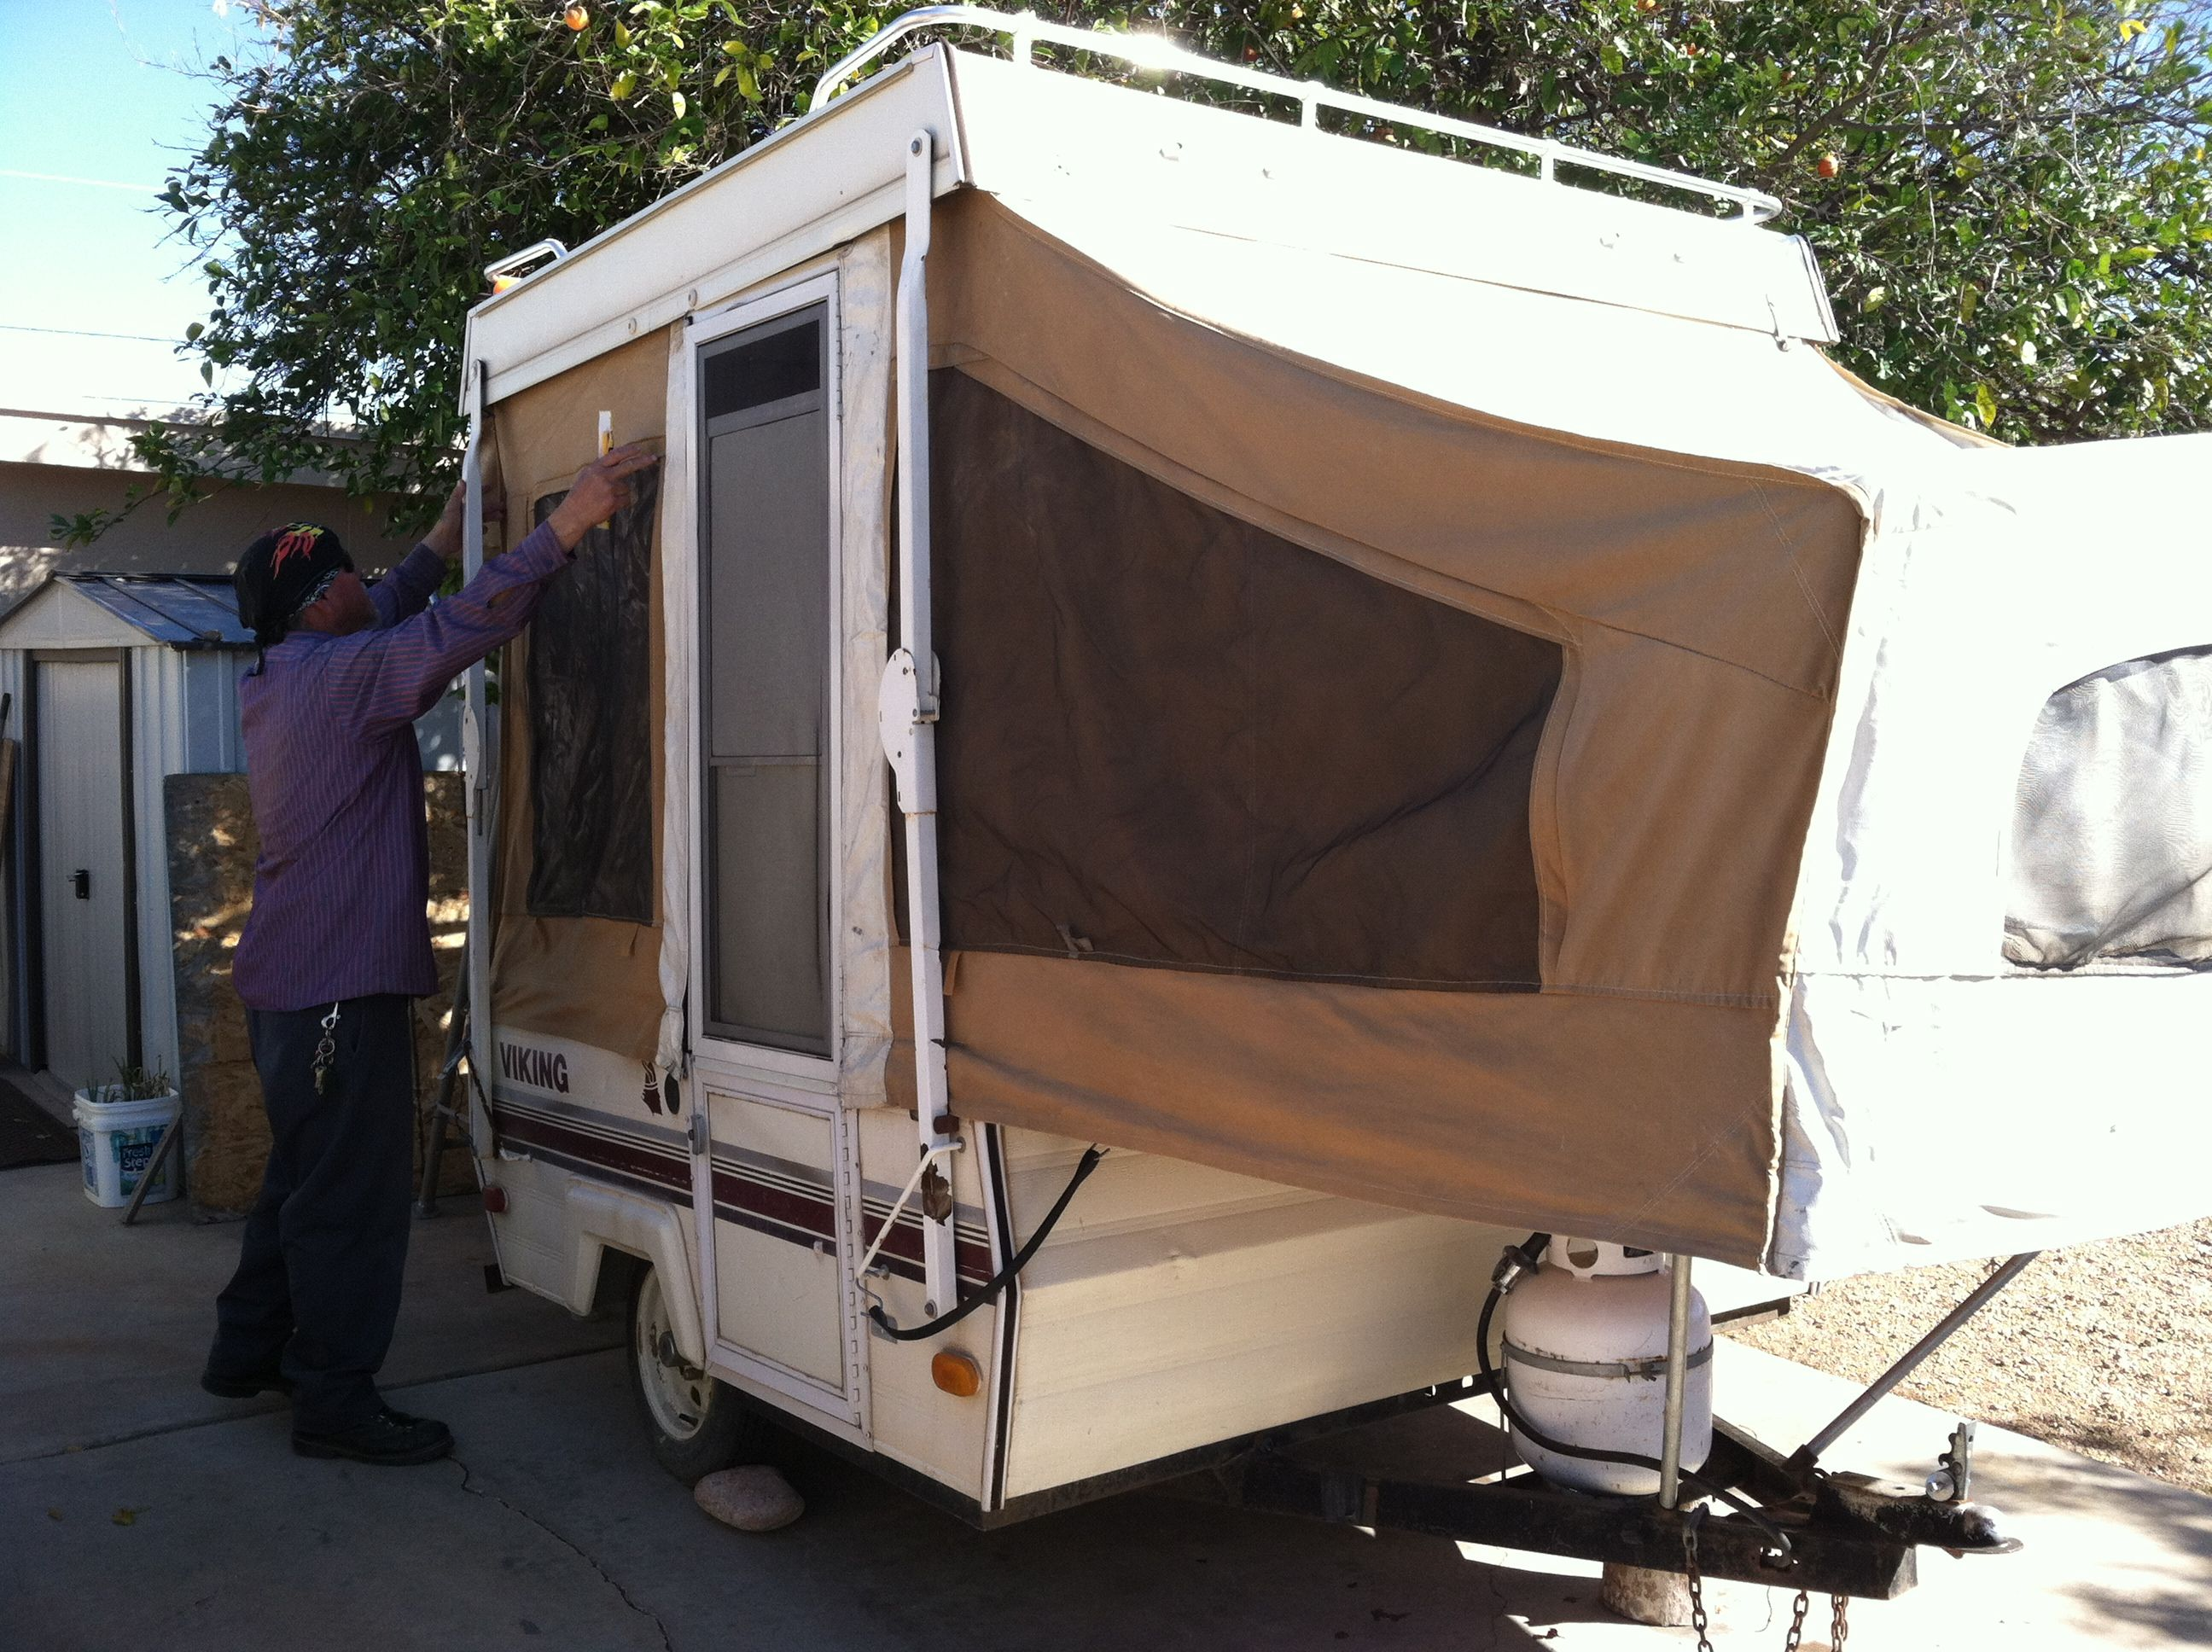 Small Pop Up Tent Trailer Has Sink Small 2 Burner Stove